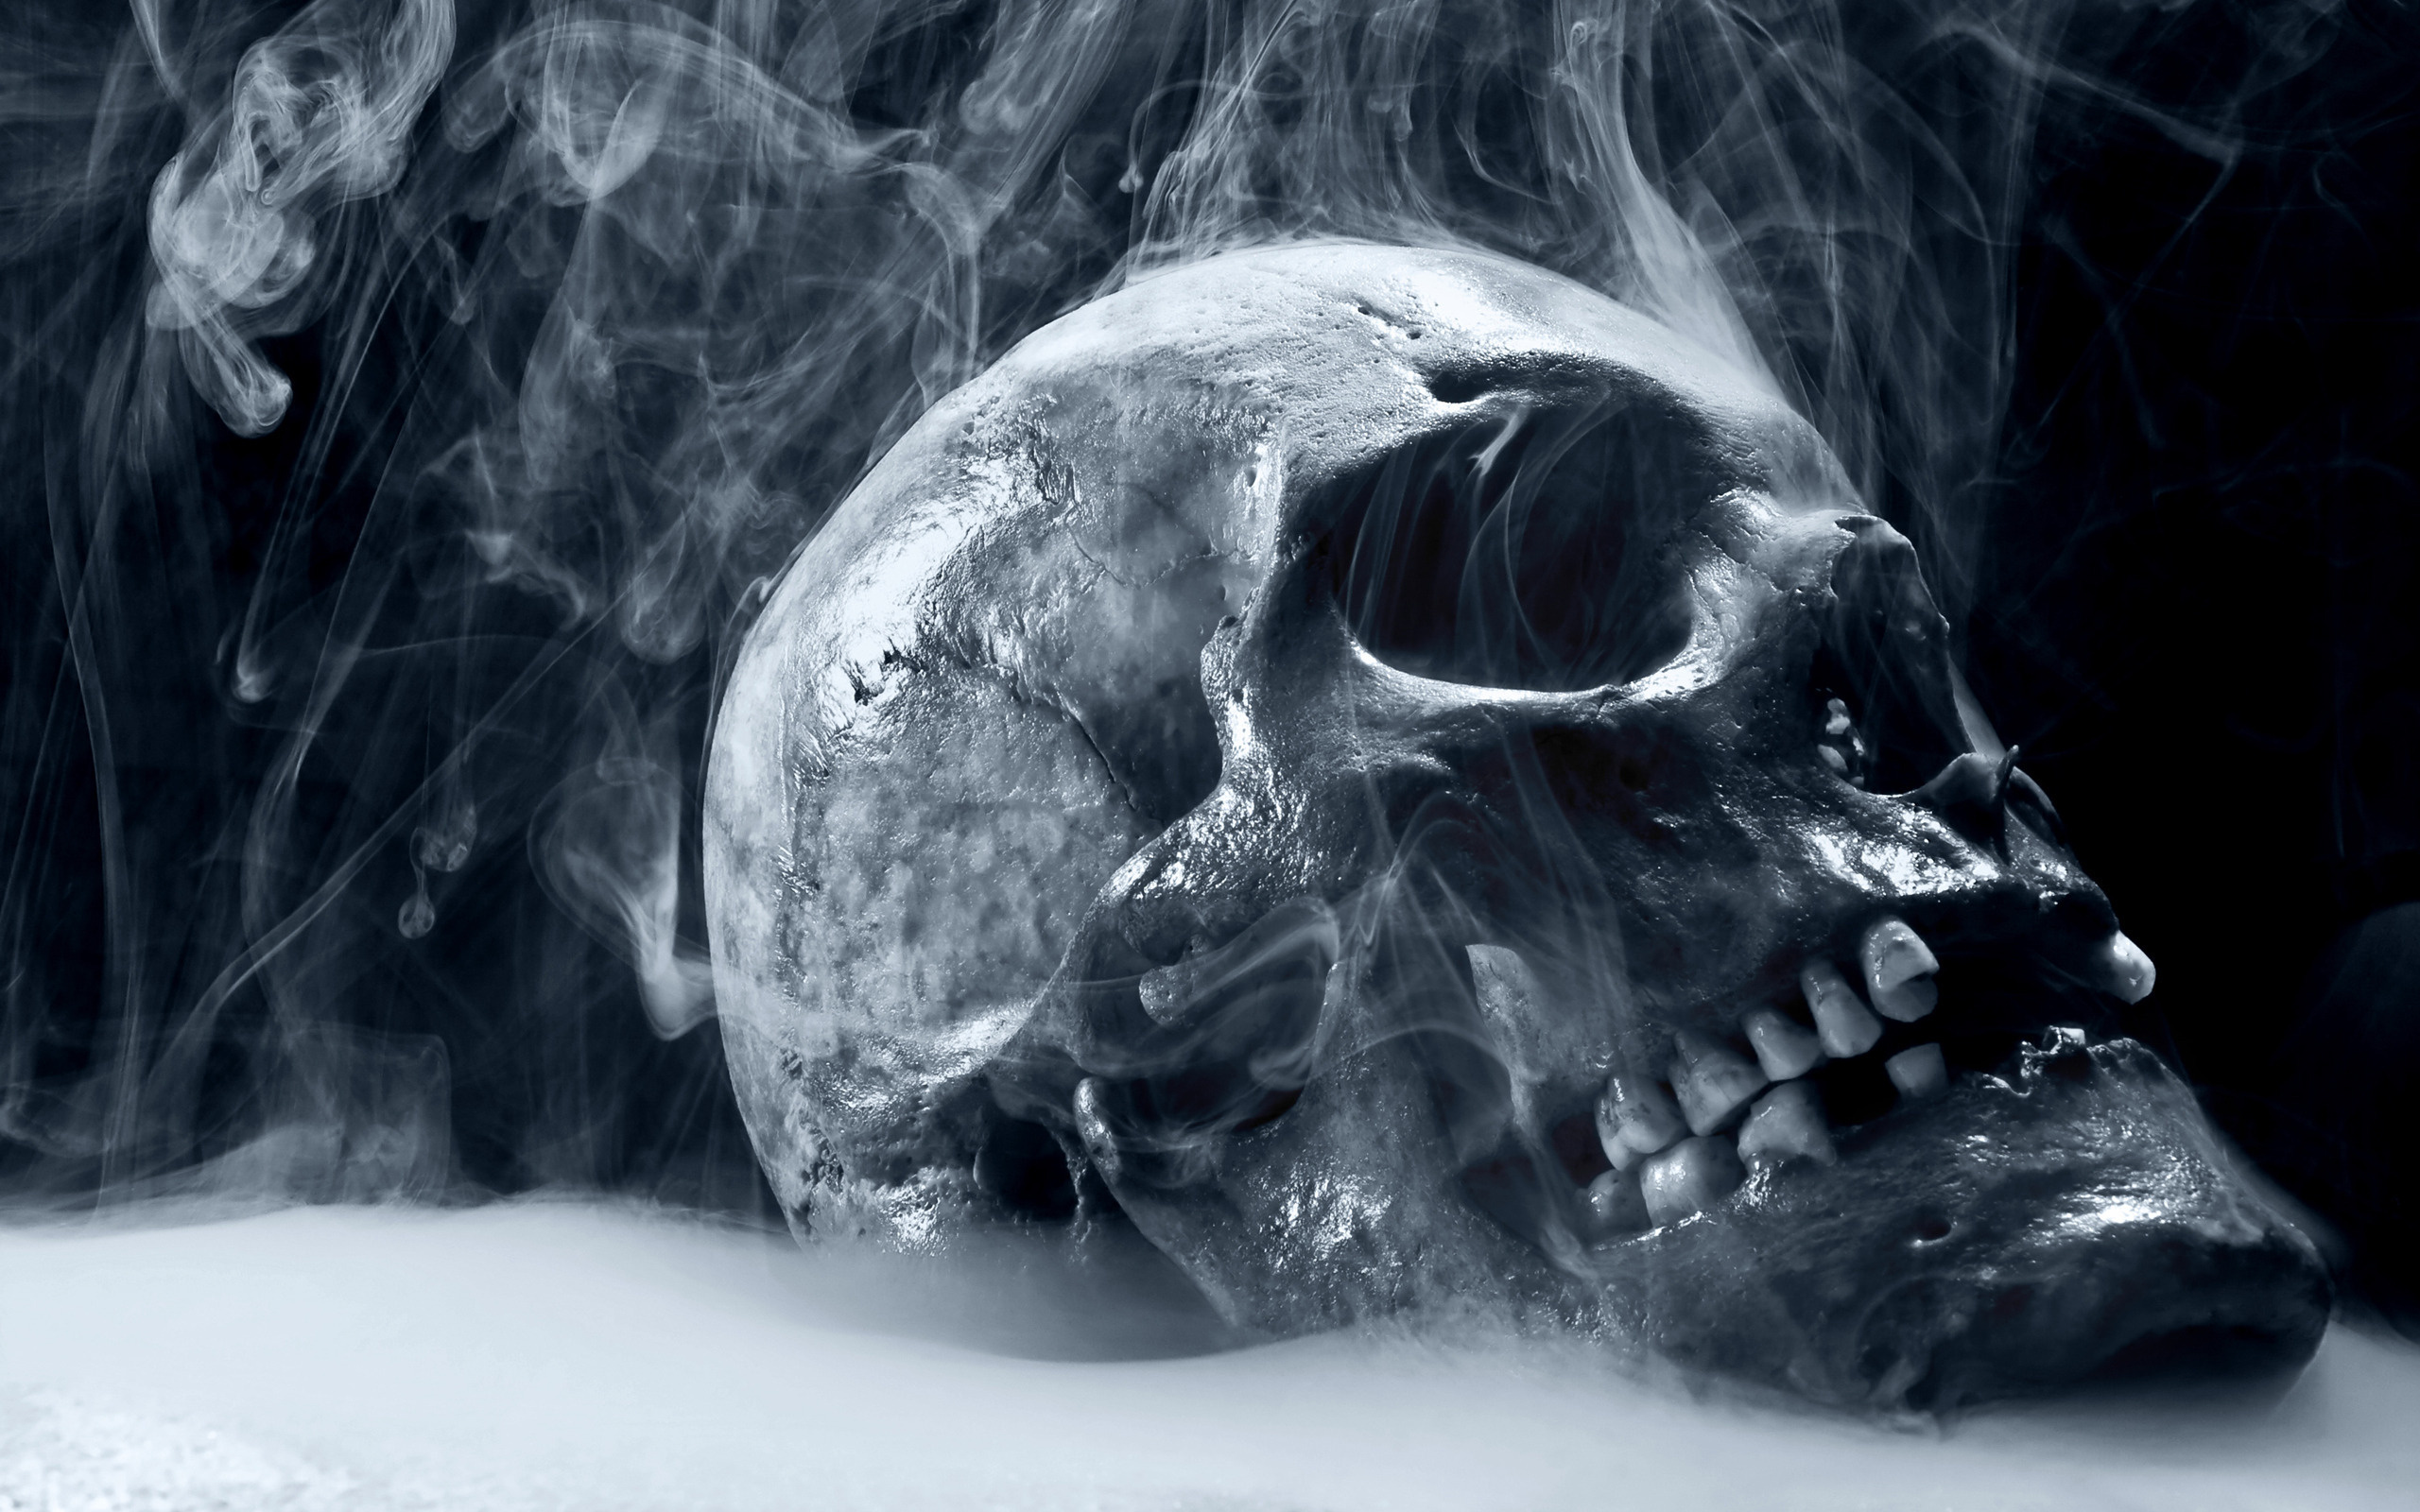 554 Skull Wallpapers | Skull Backgrounds Page 3